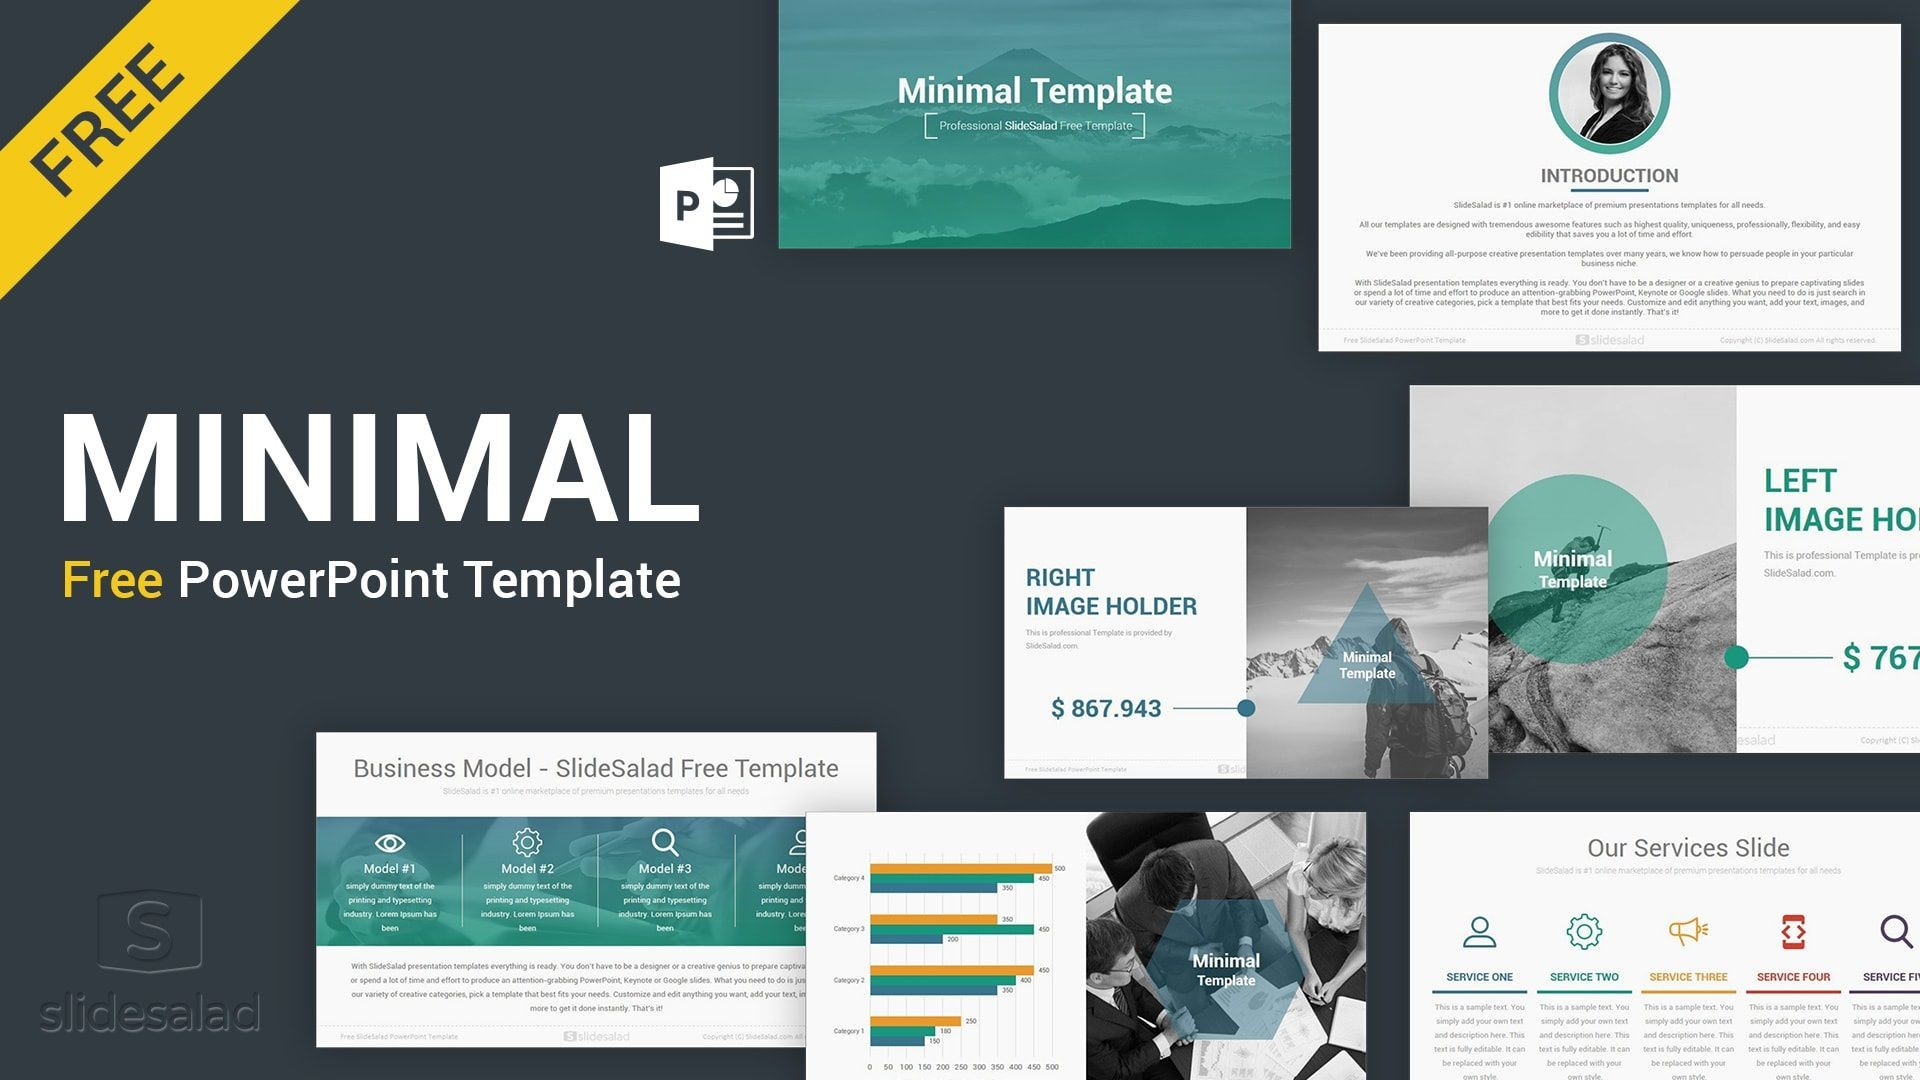 008 Incredible Ppt Template For Seminar Presentation Free Download Inspiration 1920